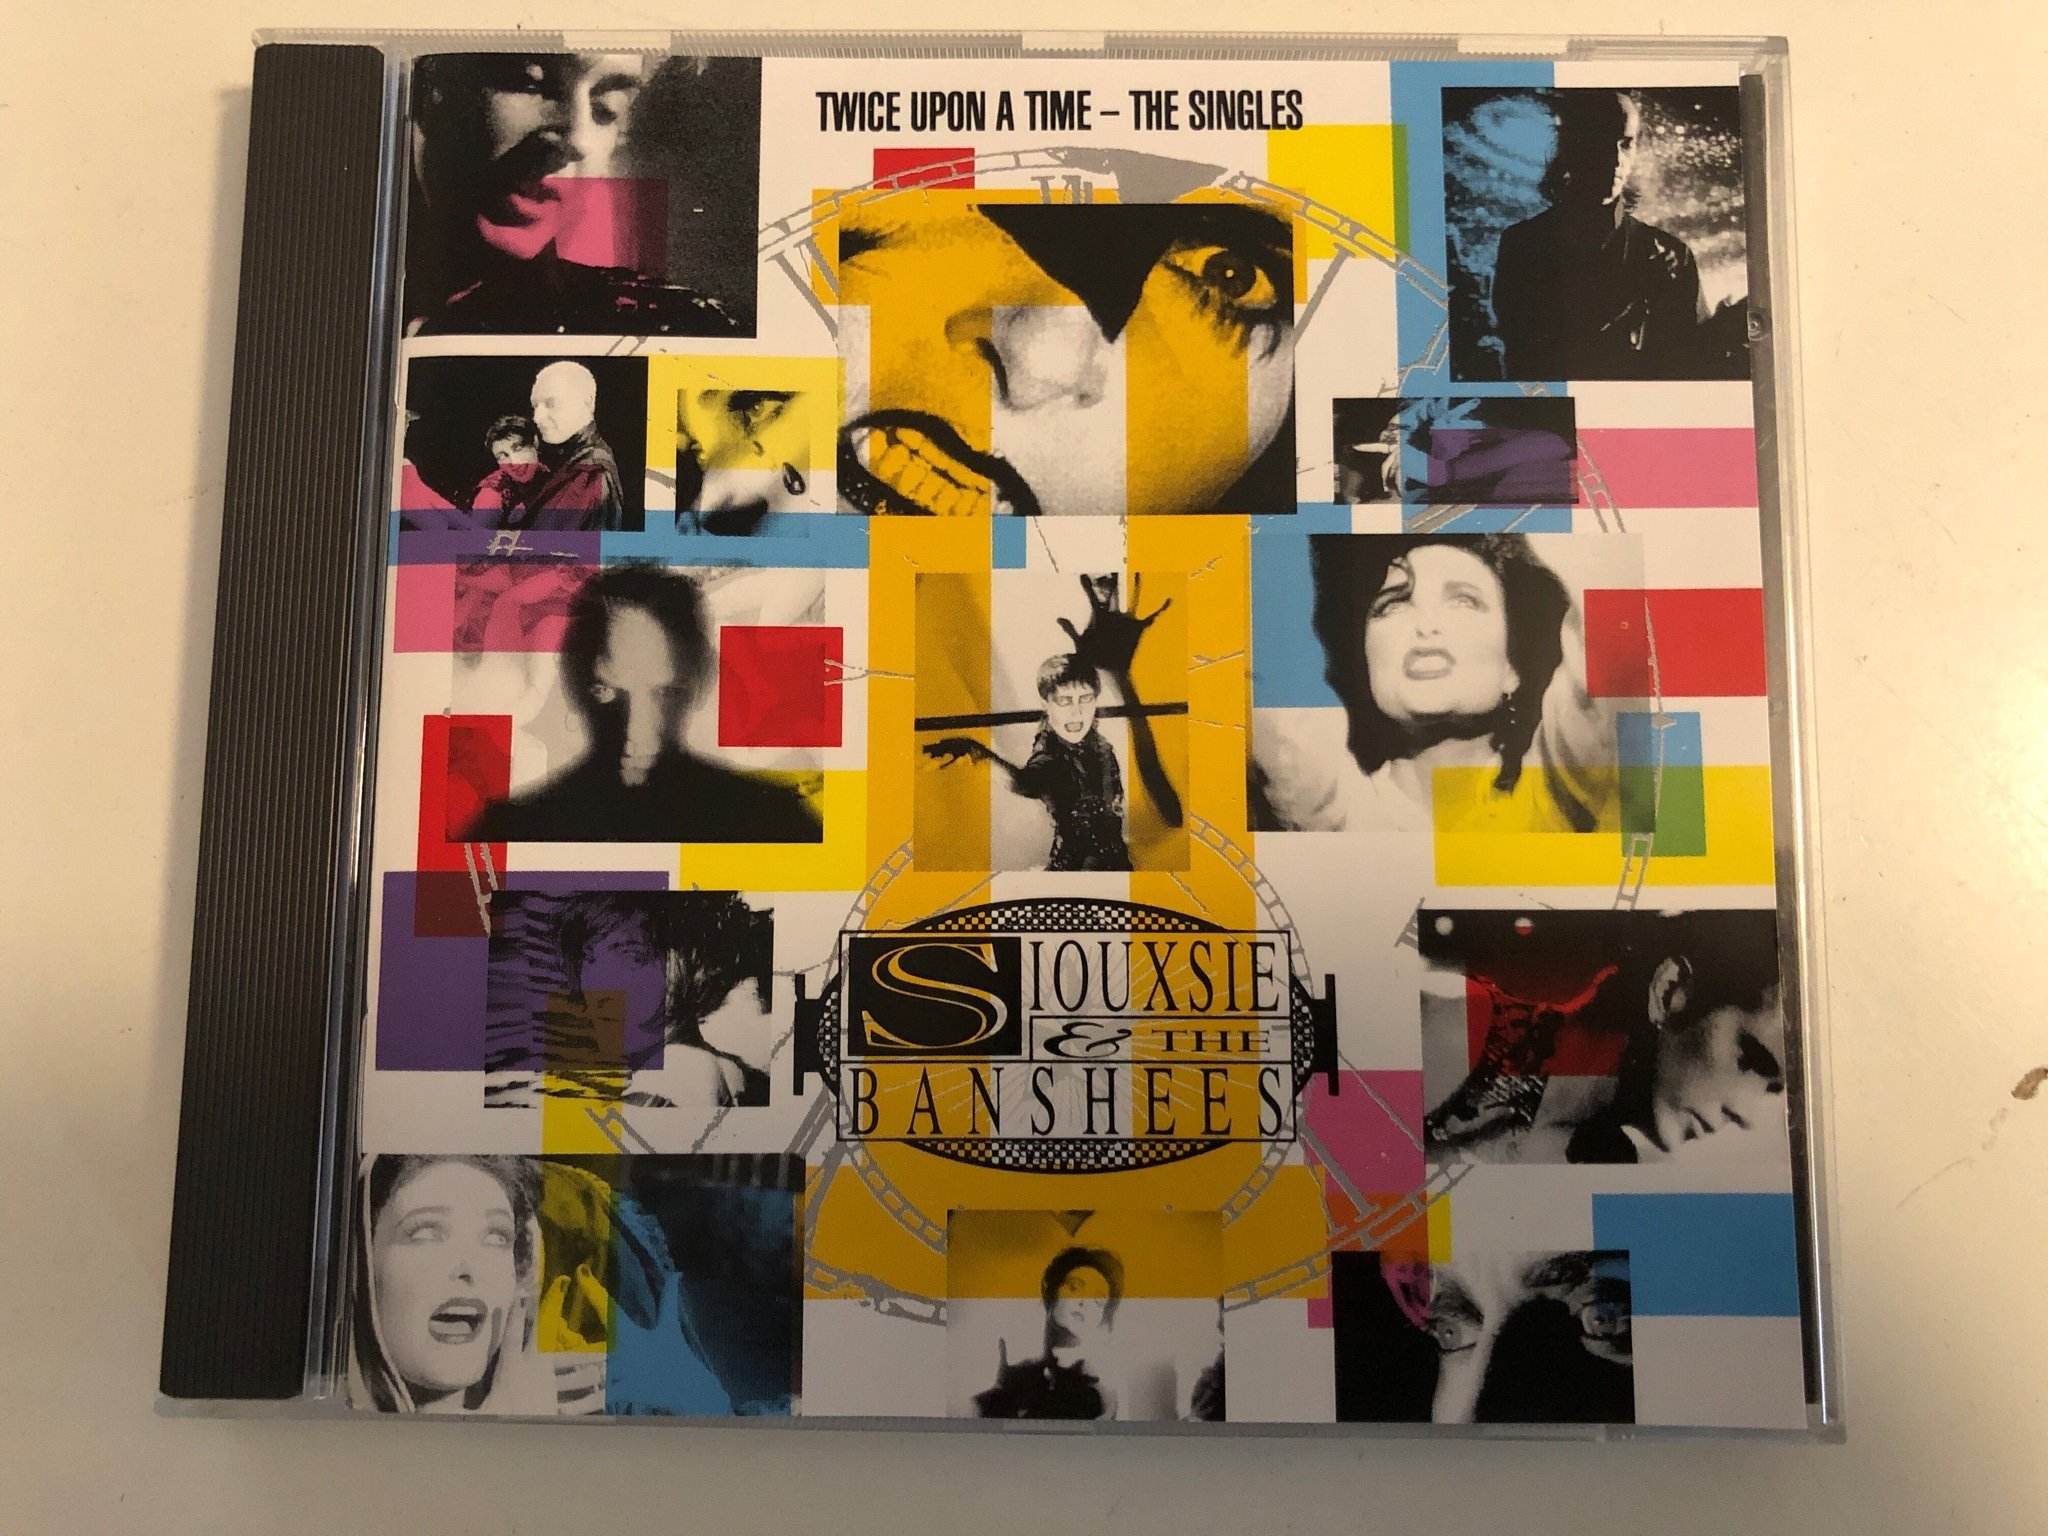 SIOUXSIE and the BANSHEES - Twice Upon A Time - The Singles , The Cure, Bauhaus